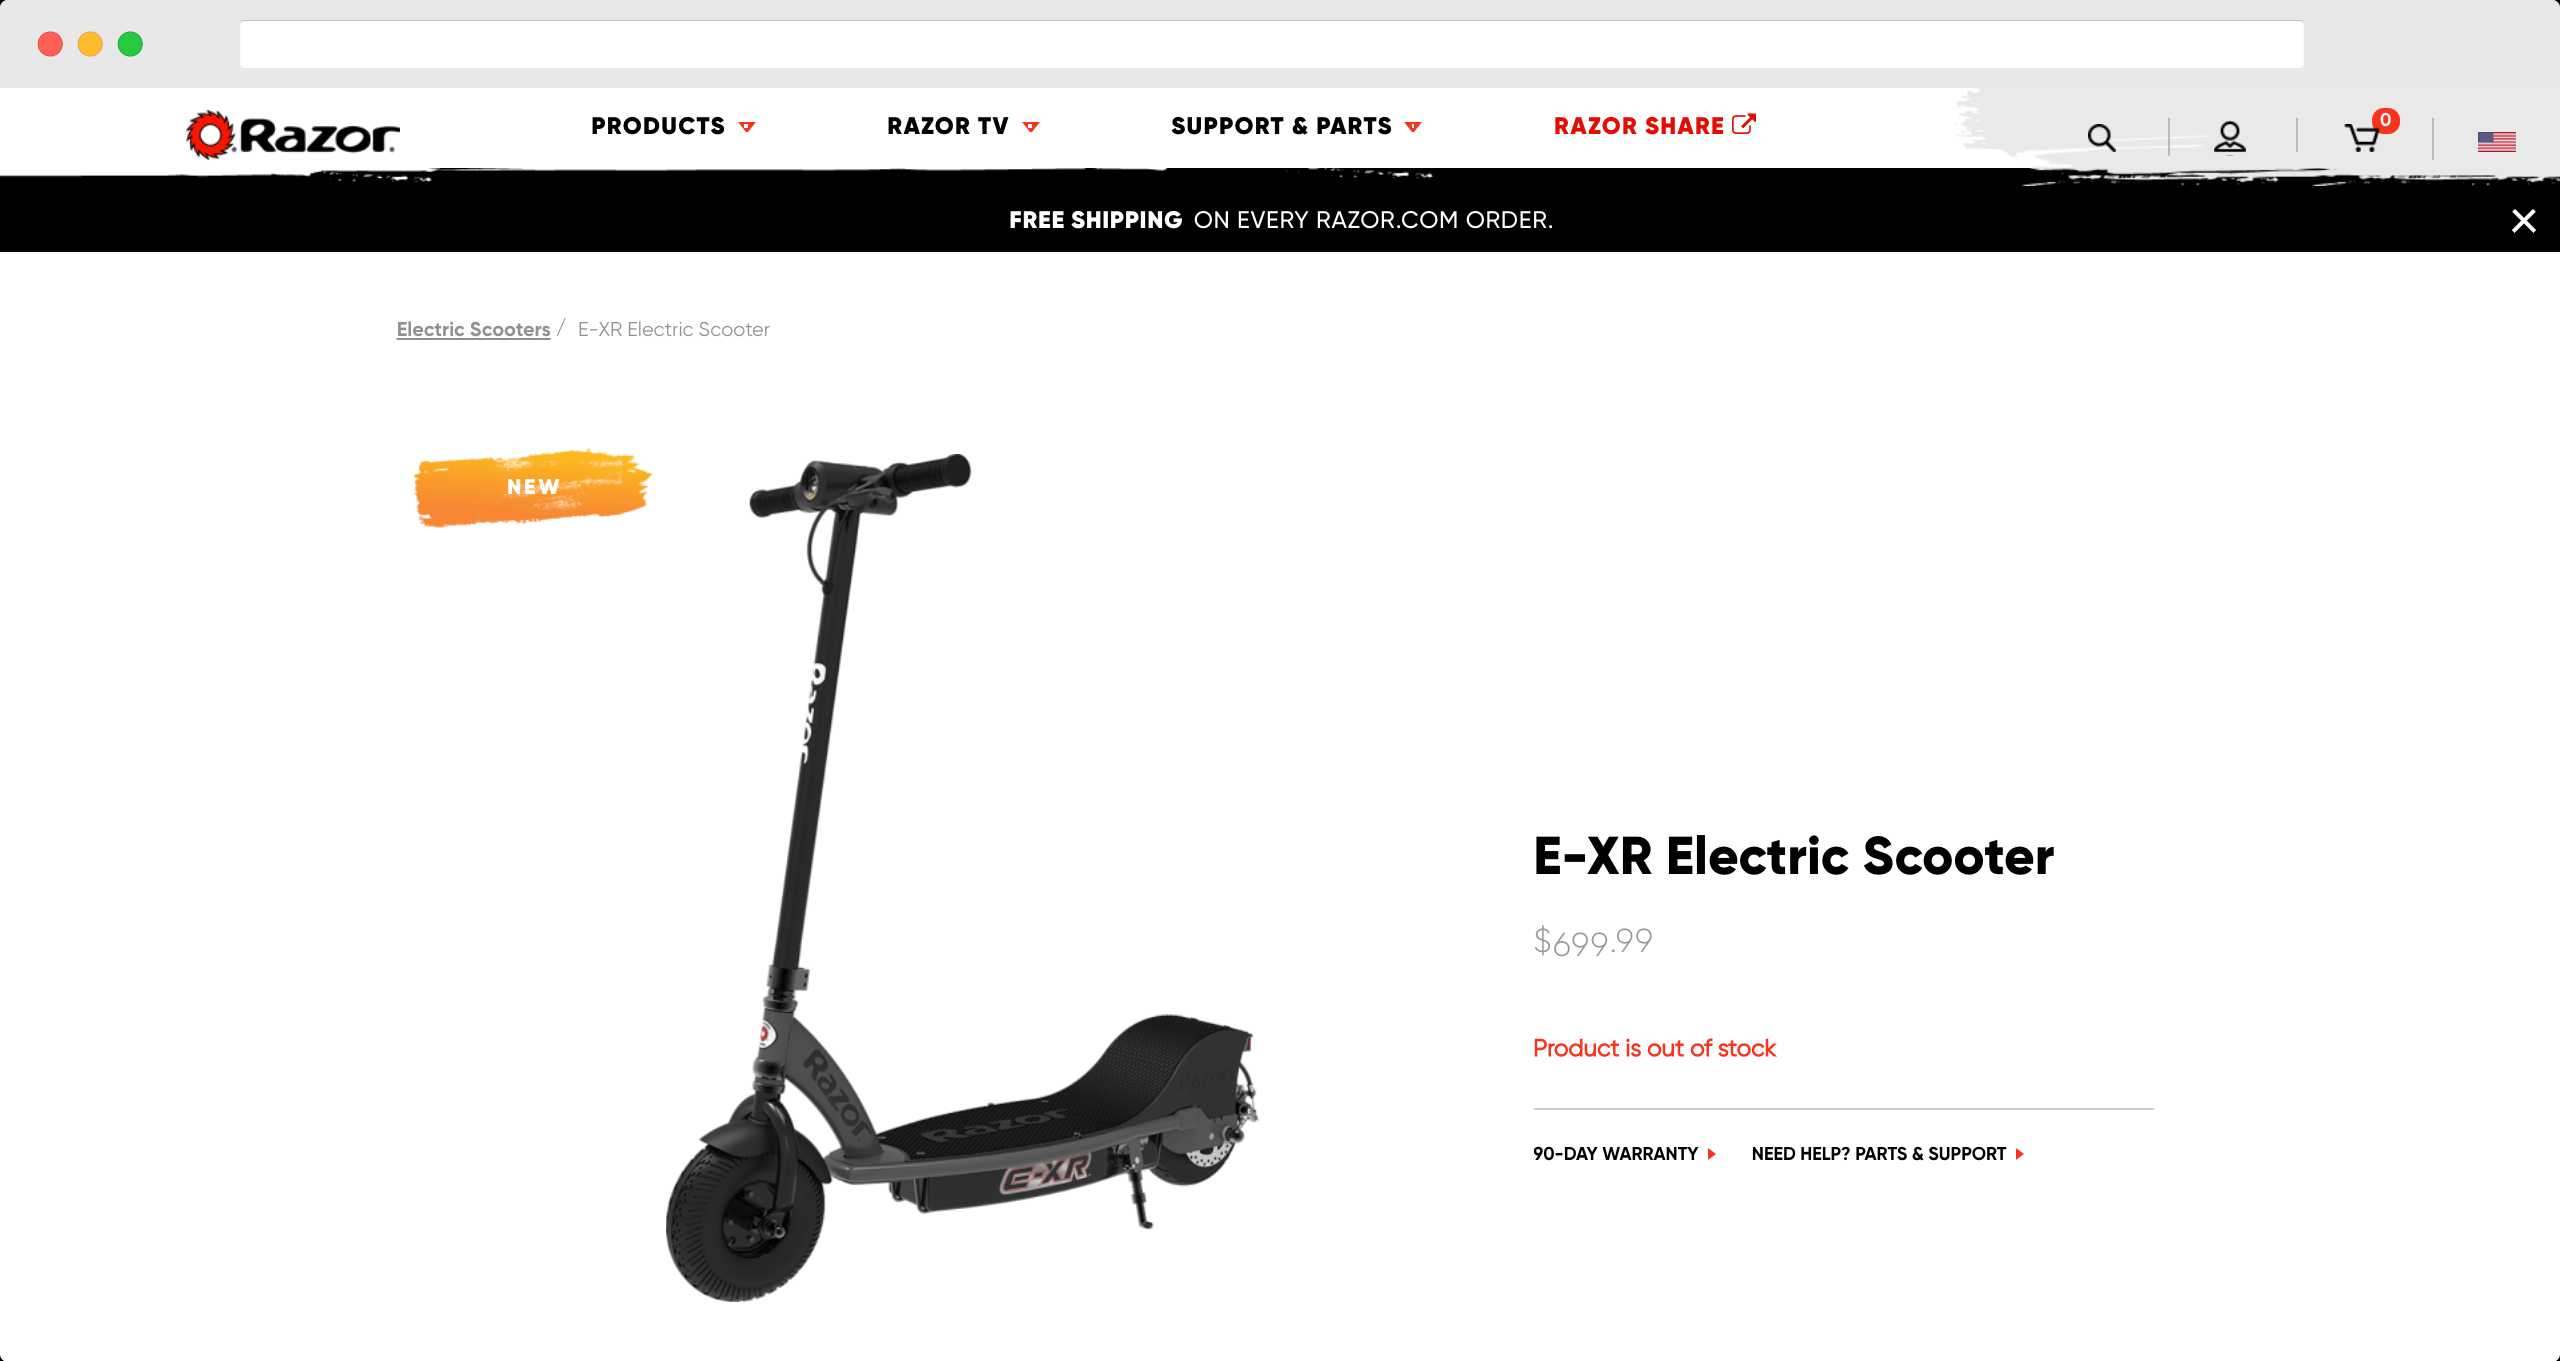 E-XR Electric Scooter Page